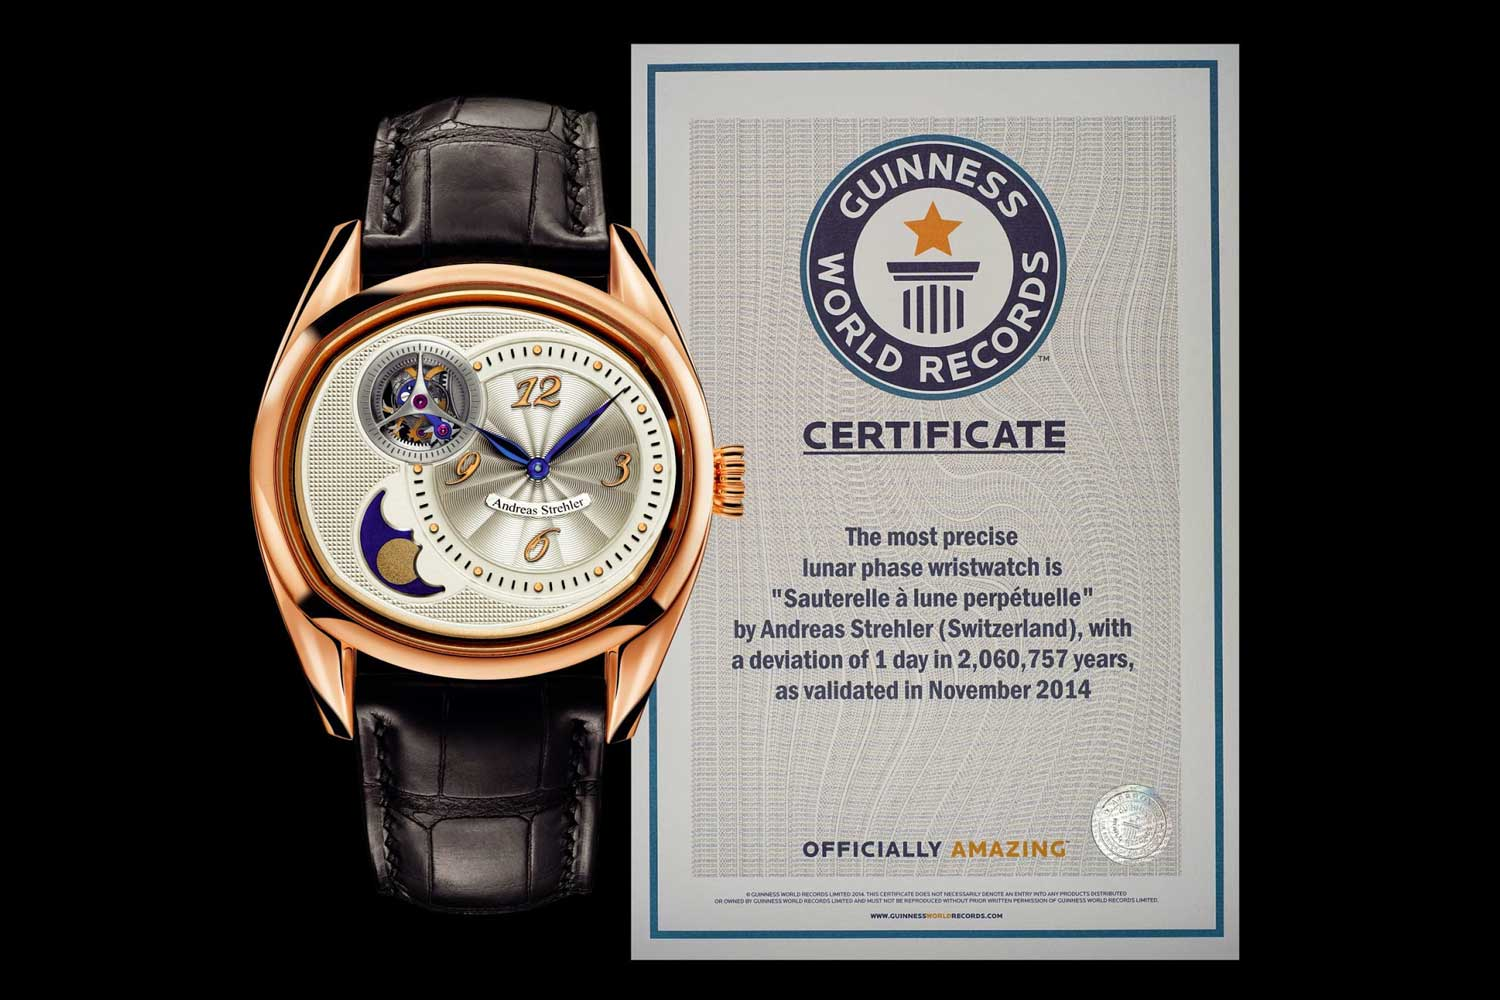 Strehler's most iconic timepiece is the Sauterelle à Lune Perpétuelle 2M presented in 2014 that earned a place in the Guinness World Records as the most precise moon phase indication in the world, requiring a correction every 2.045 million years